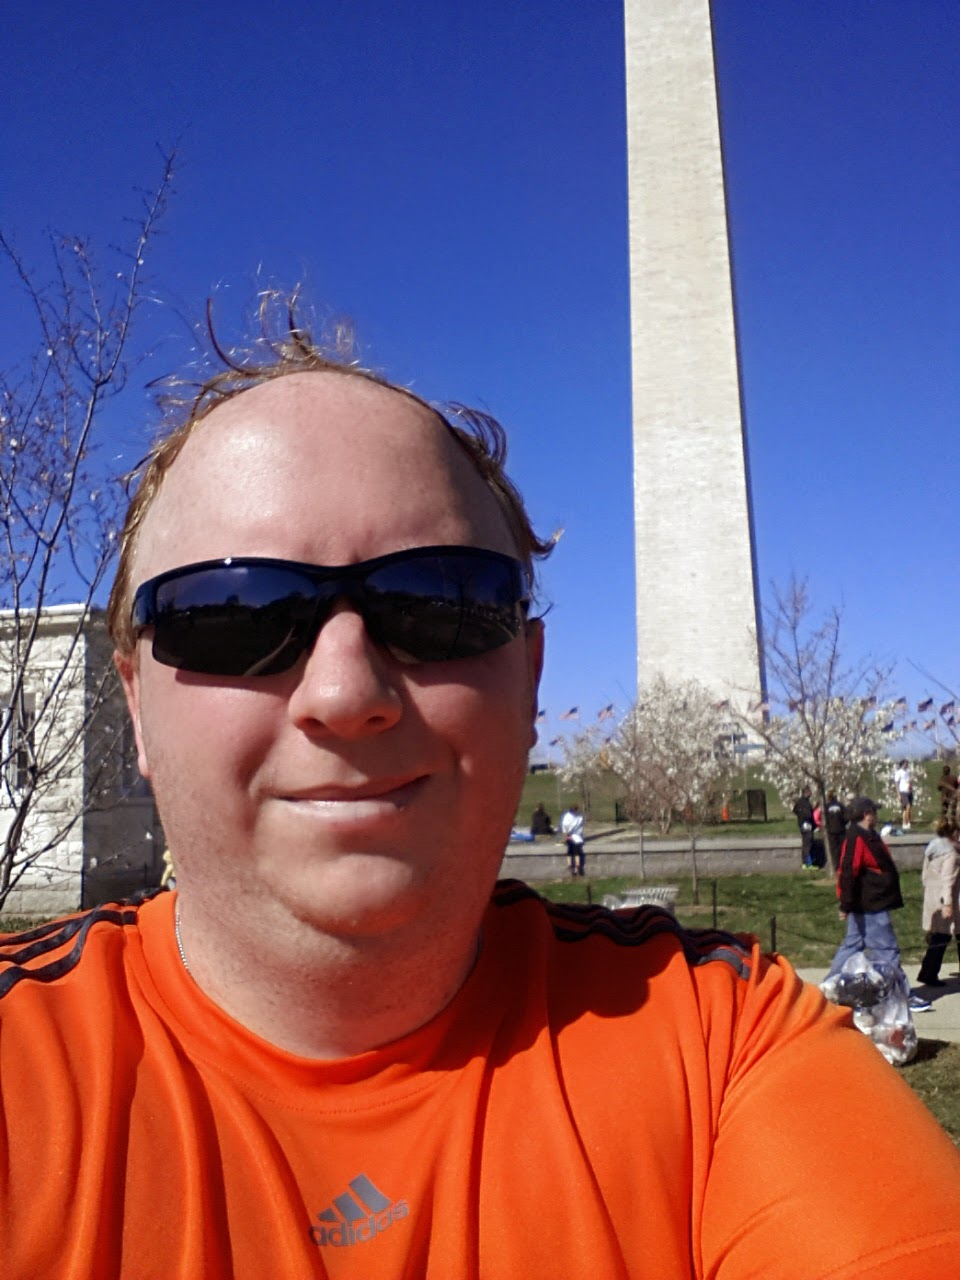 After the Cherry Blossom 10 Mile Run